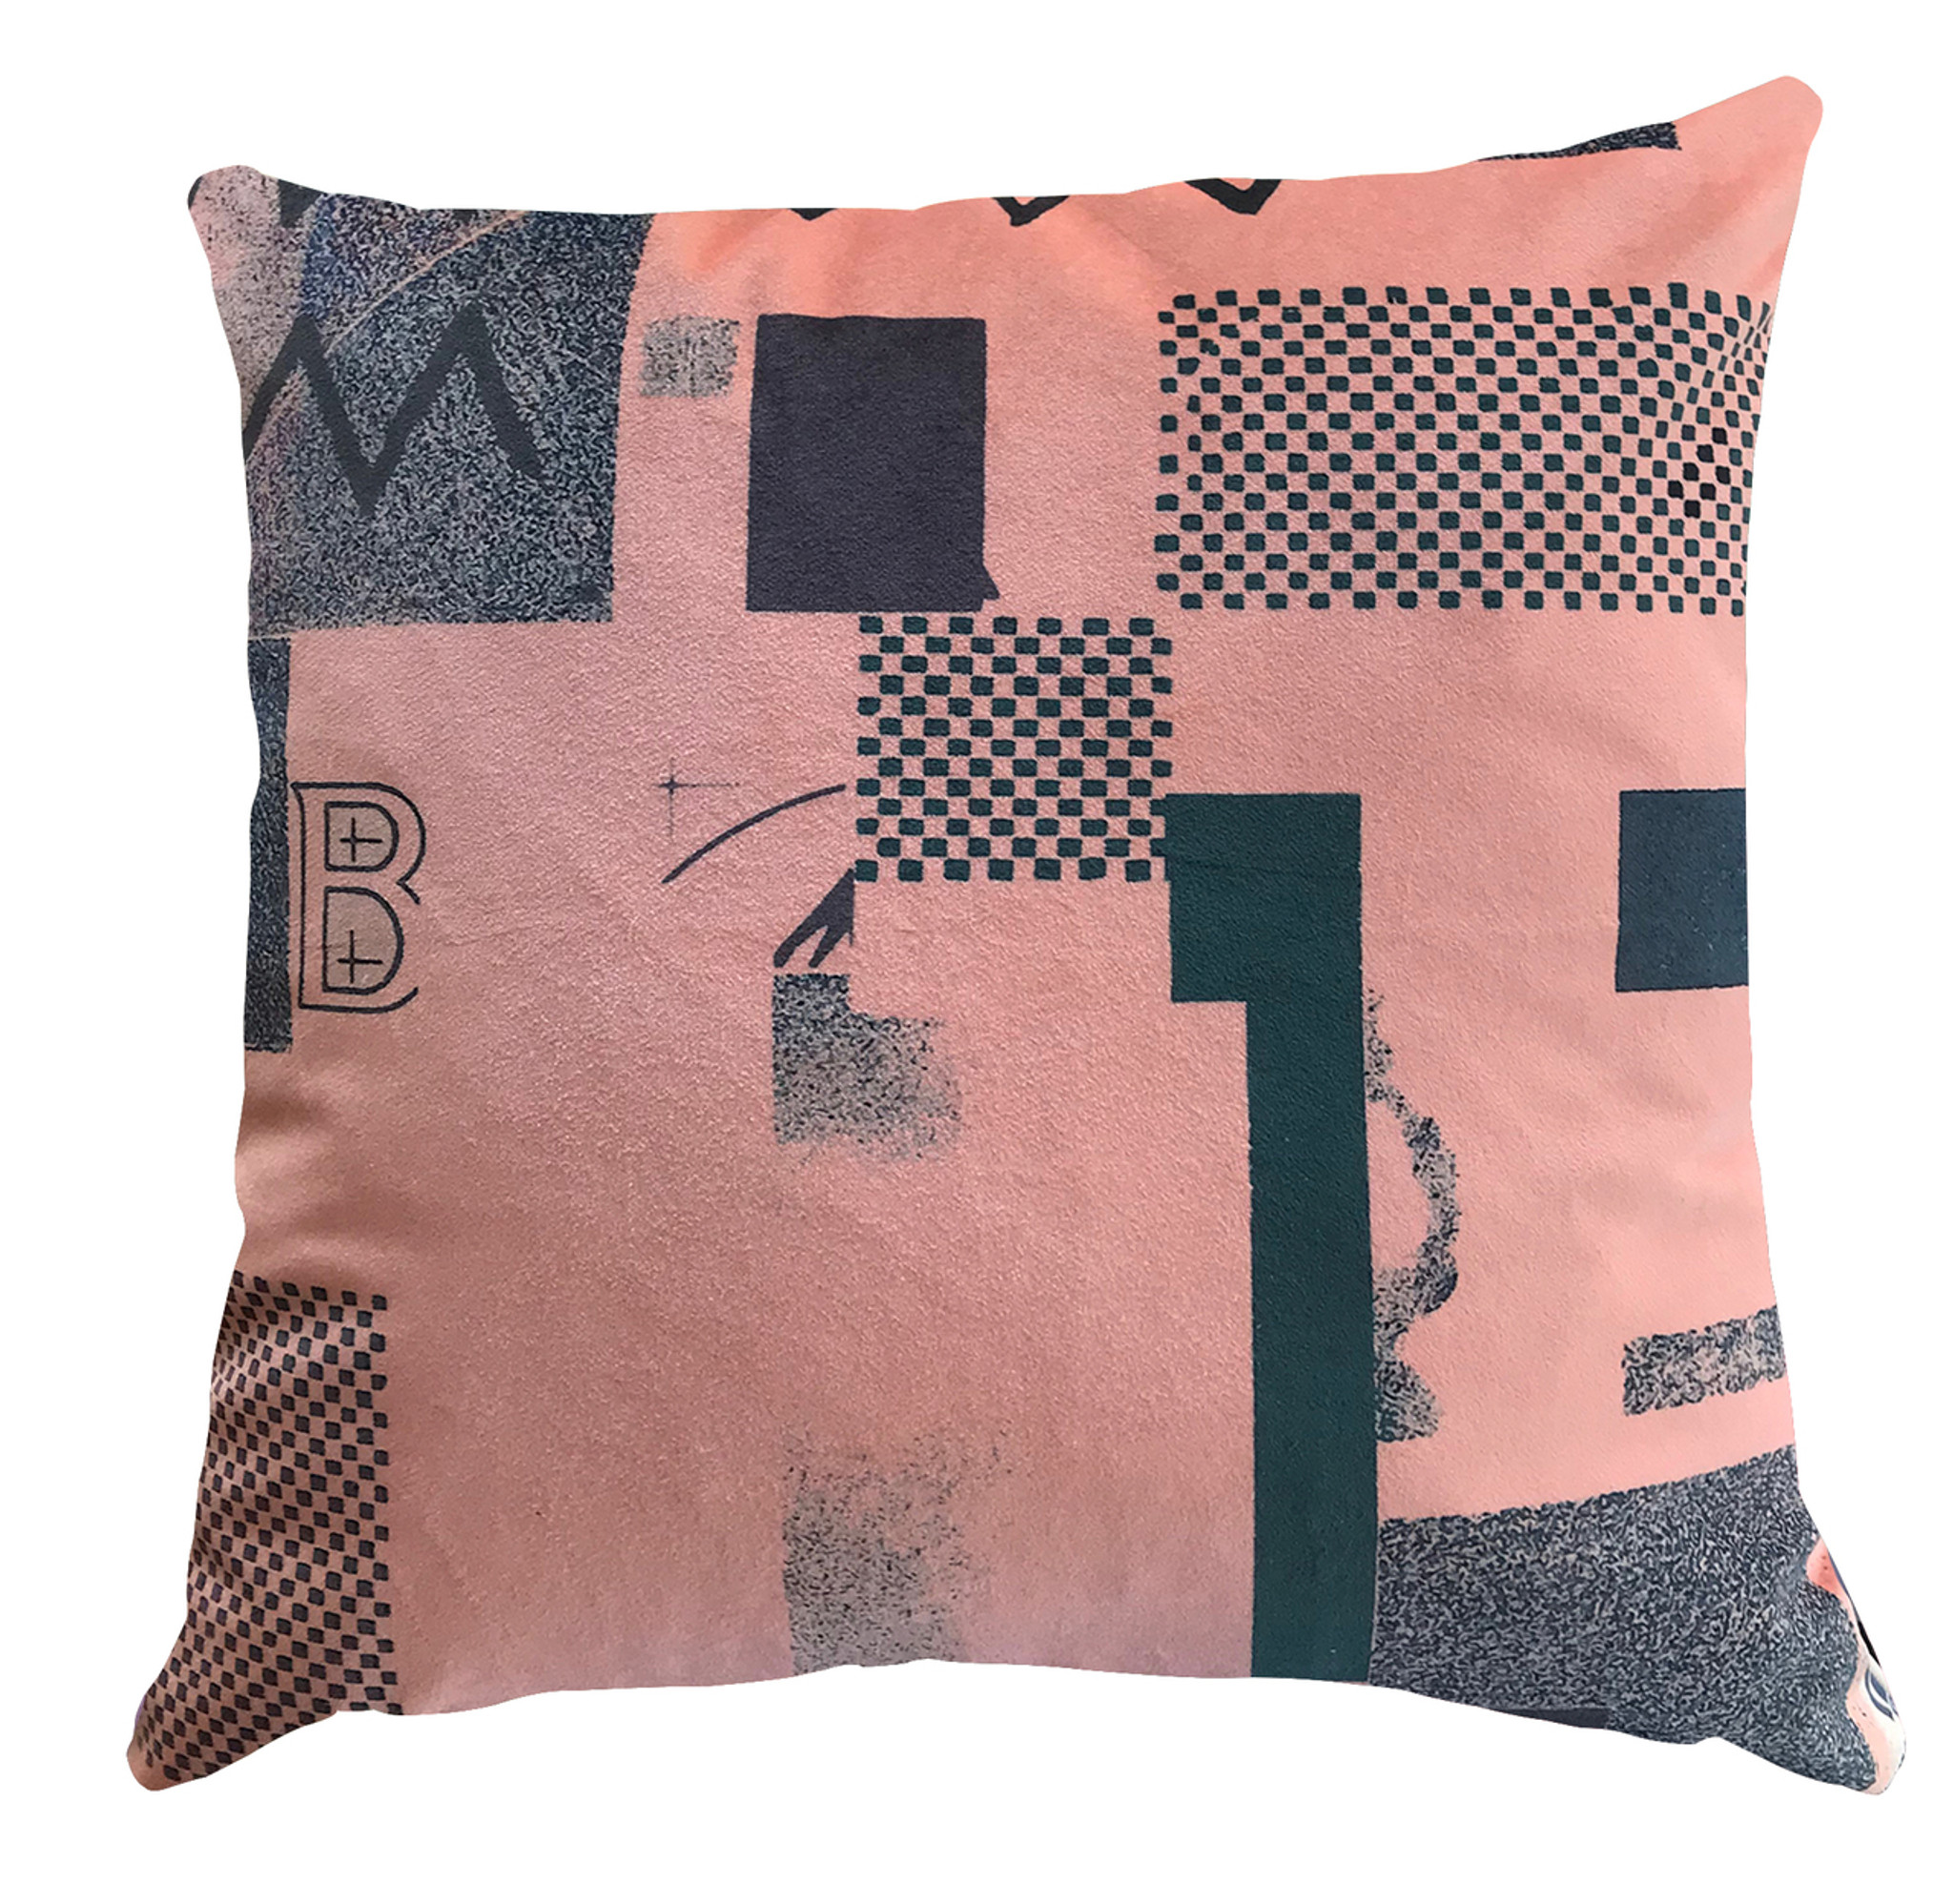 Cushion Cover - Modigliani Was Here - Abstract in Pink